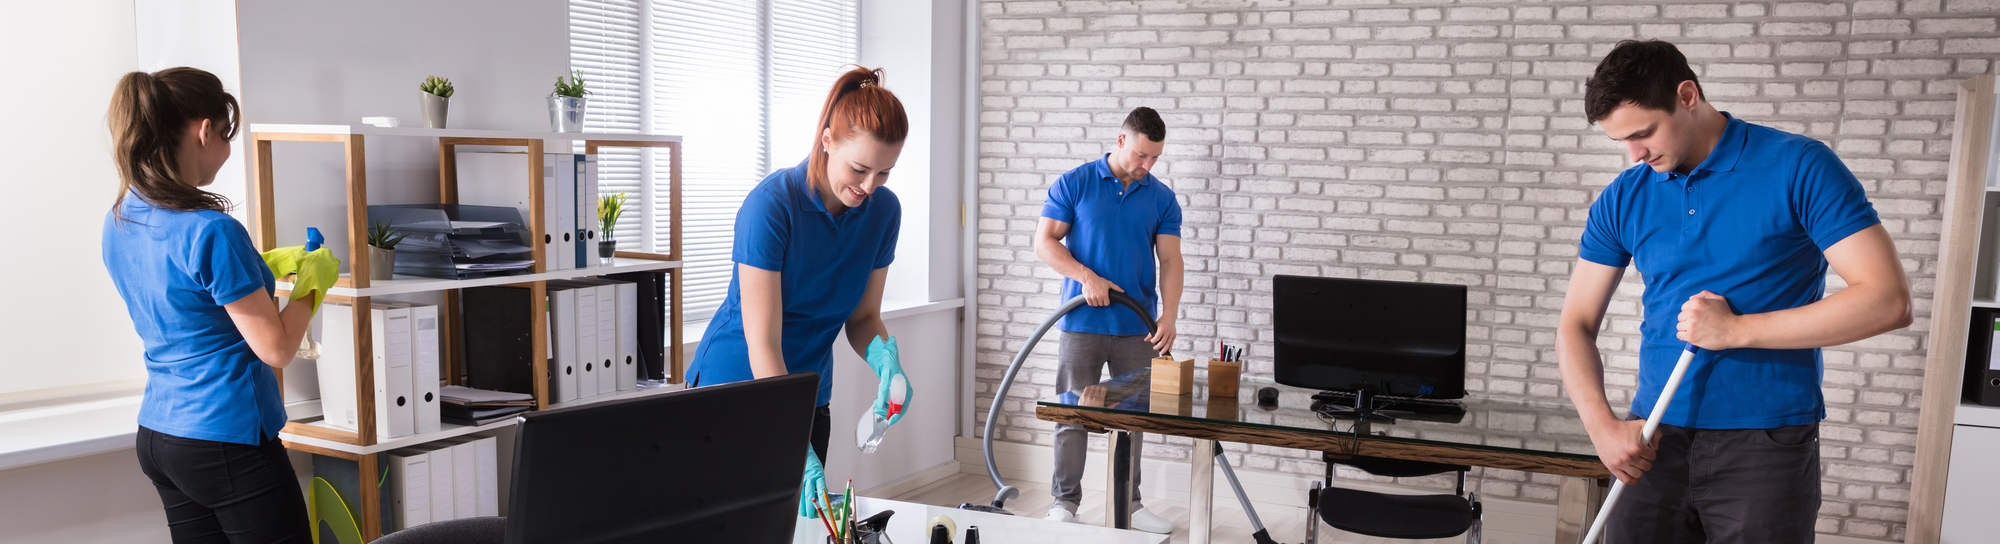 commercial Cleaning Service Maryland